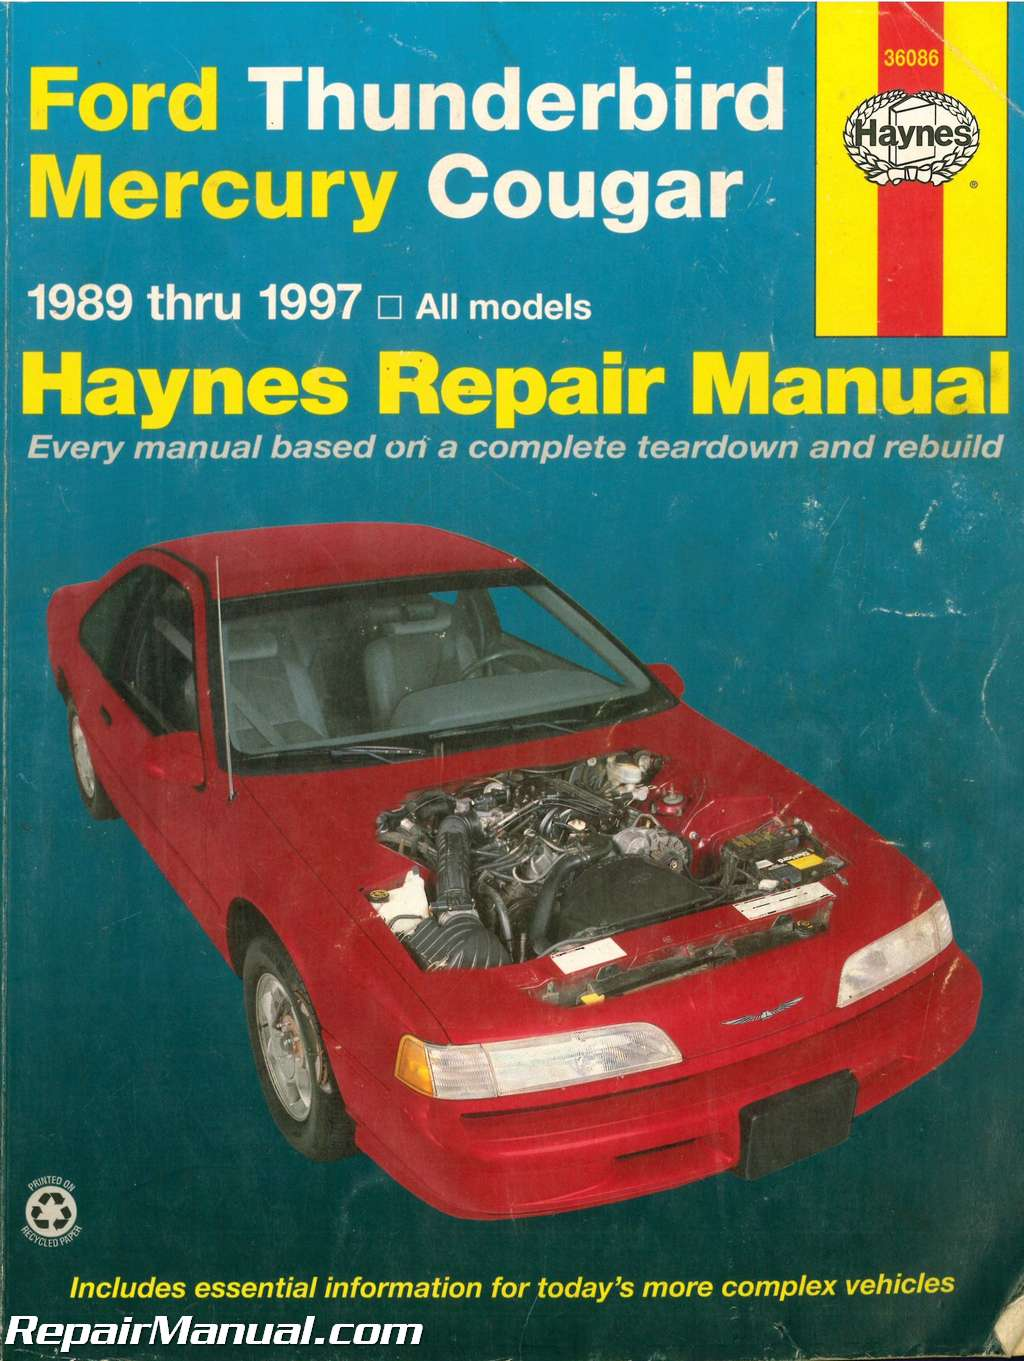 used haynes ford thunderbird mercury cougar 1989 1997 auto repair manual rh repairmanual com used automotive repair manuals used automotive repair manuals